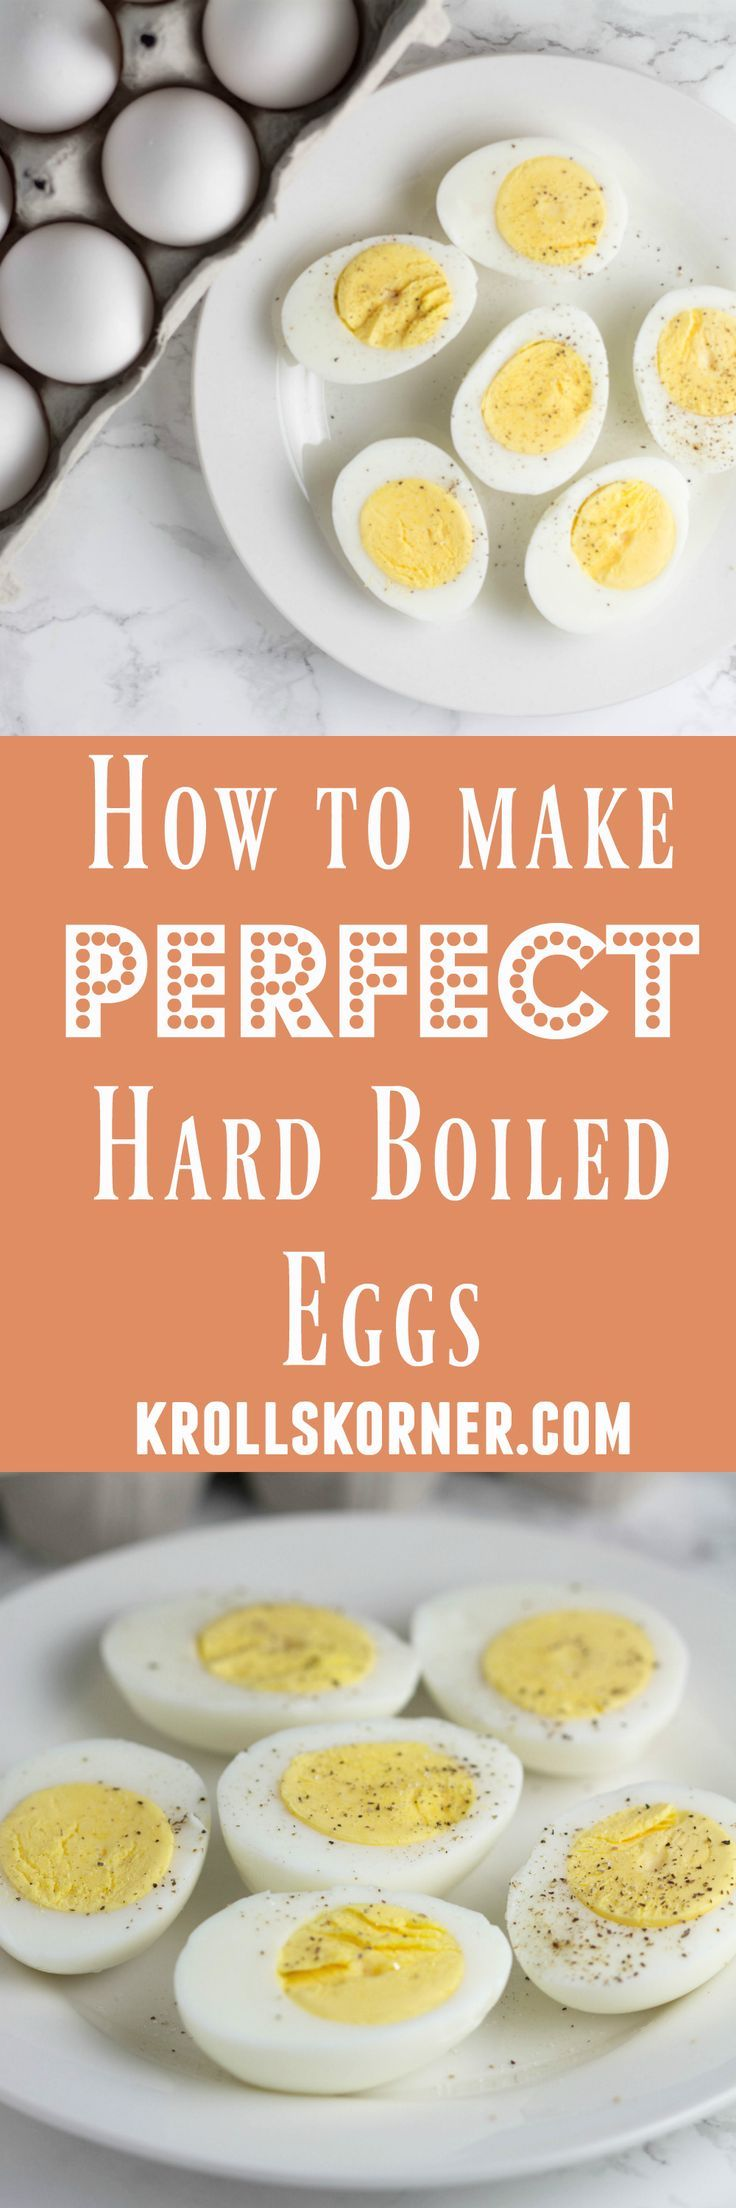 Making Hard Boiled Eggs Can Be Trickylearn My Tips To Make The